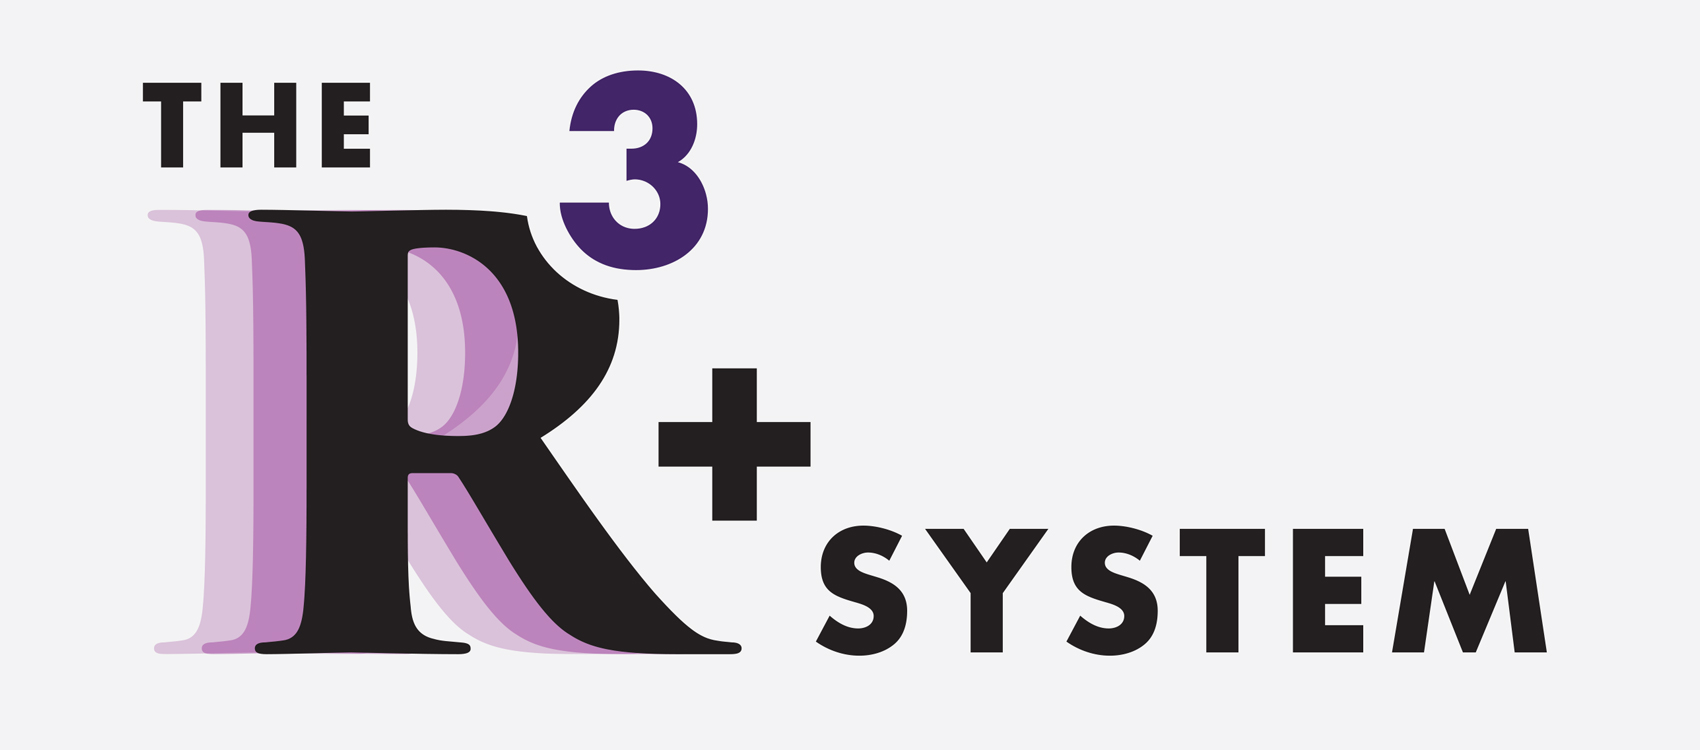 The 3R Plus System